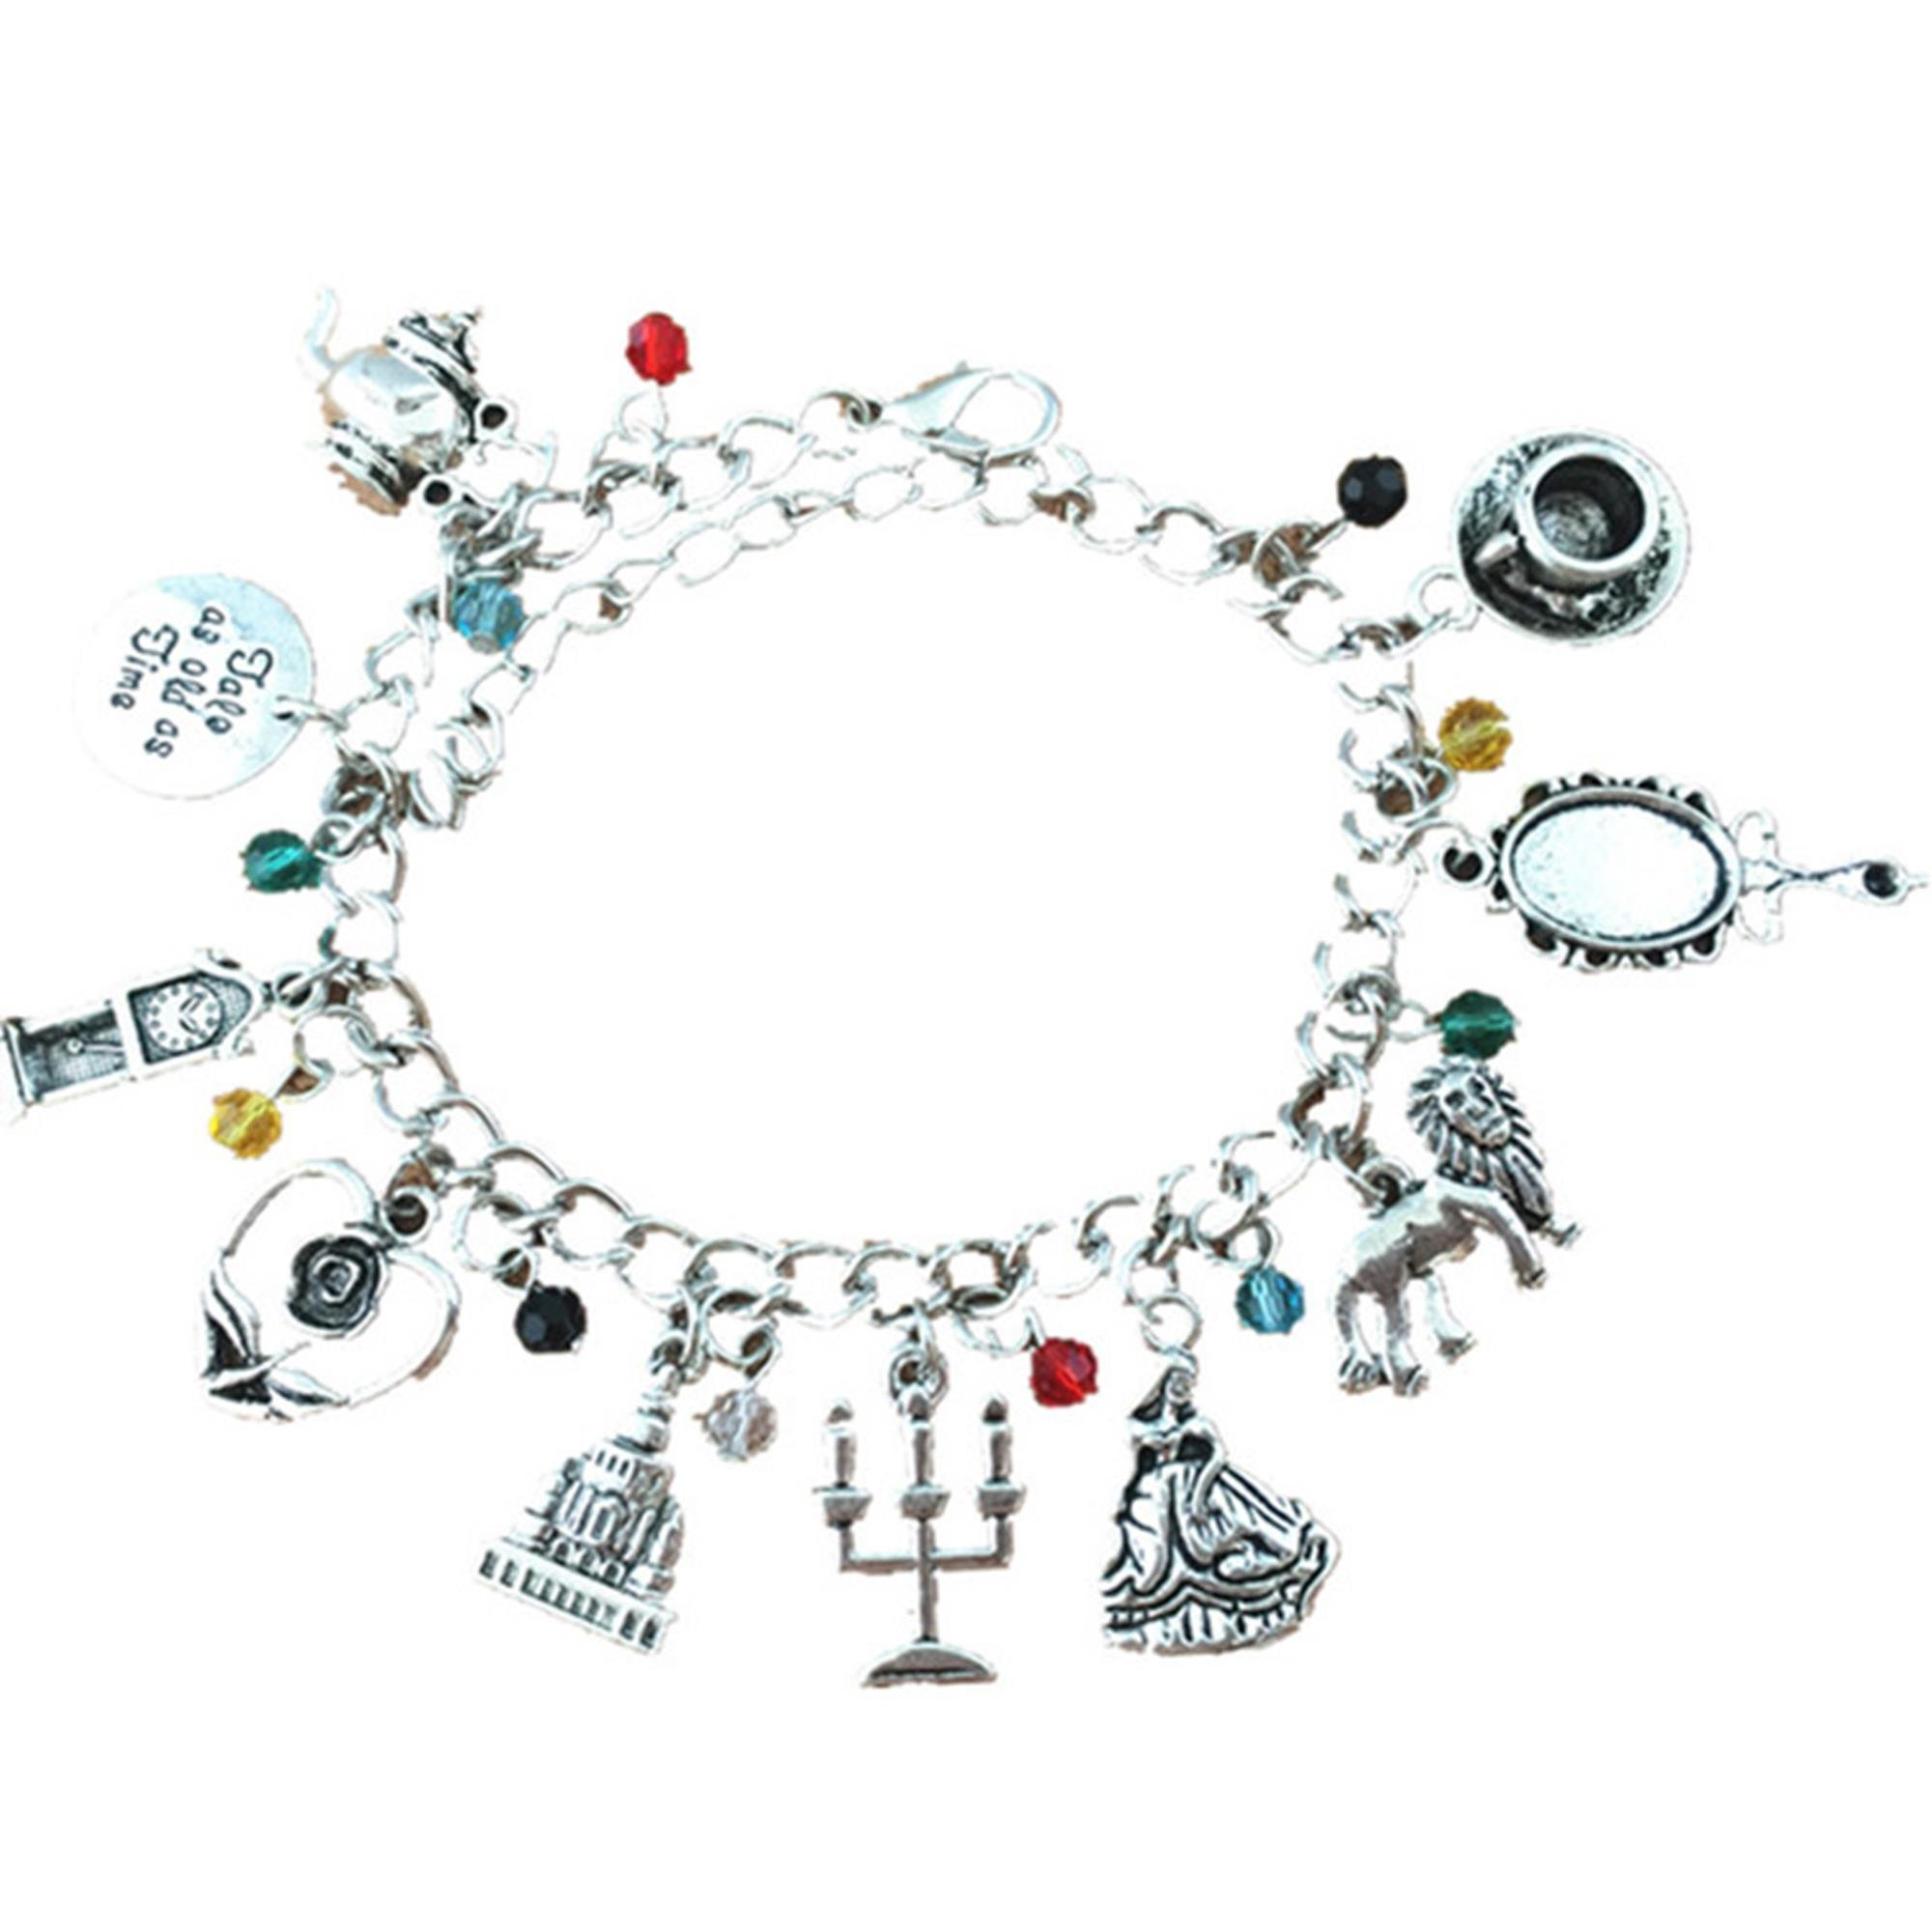 J&C Family Owned Beauty and The Beast 10 Charms Lobster Clasp Bracelet in Gift Box by J&C Family Owned Brand (Image #1)